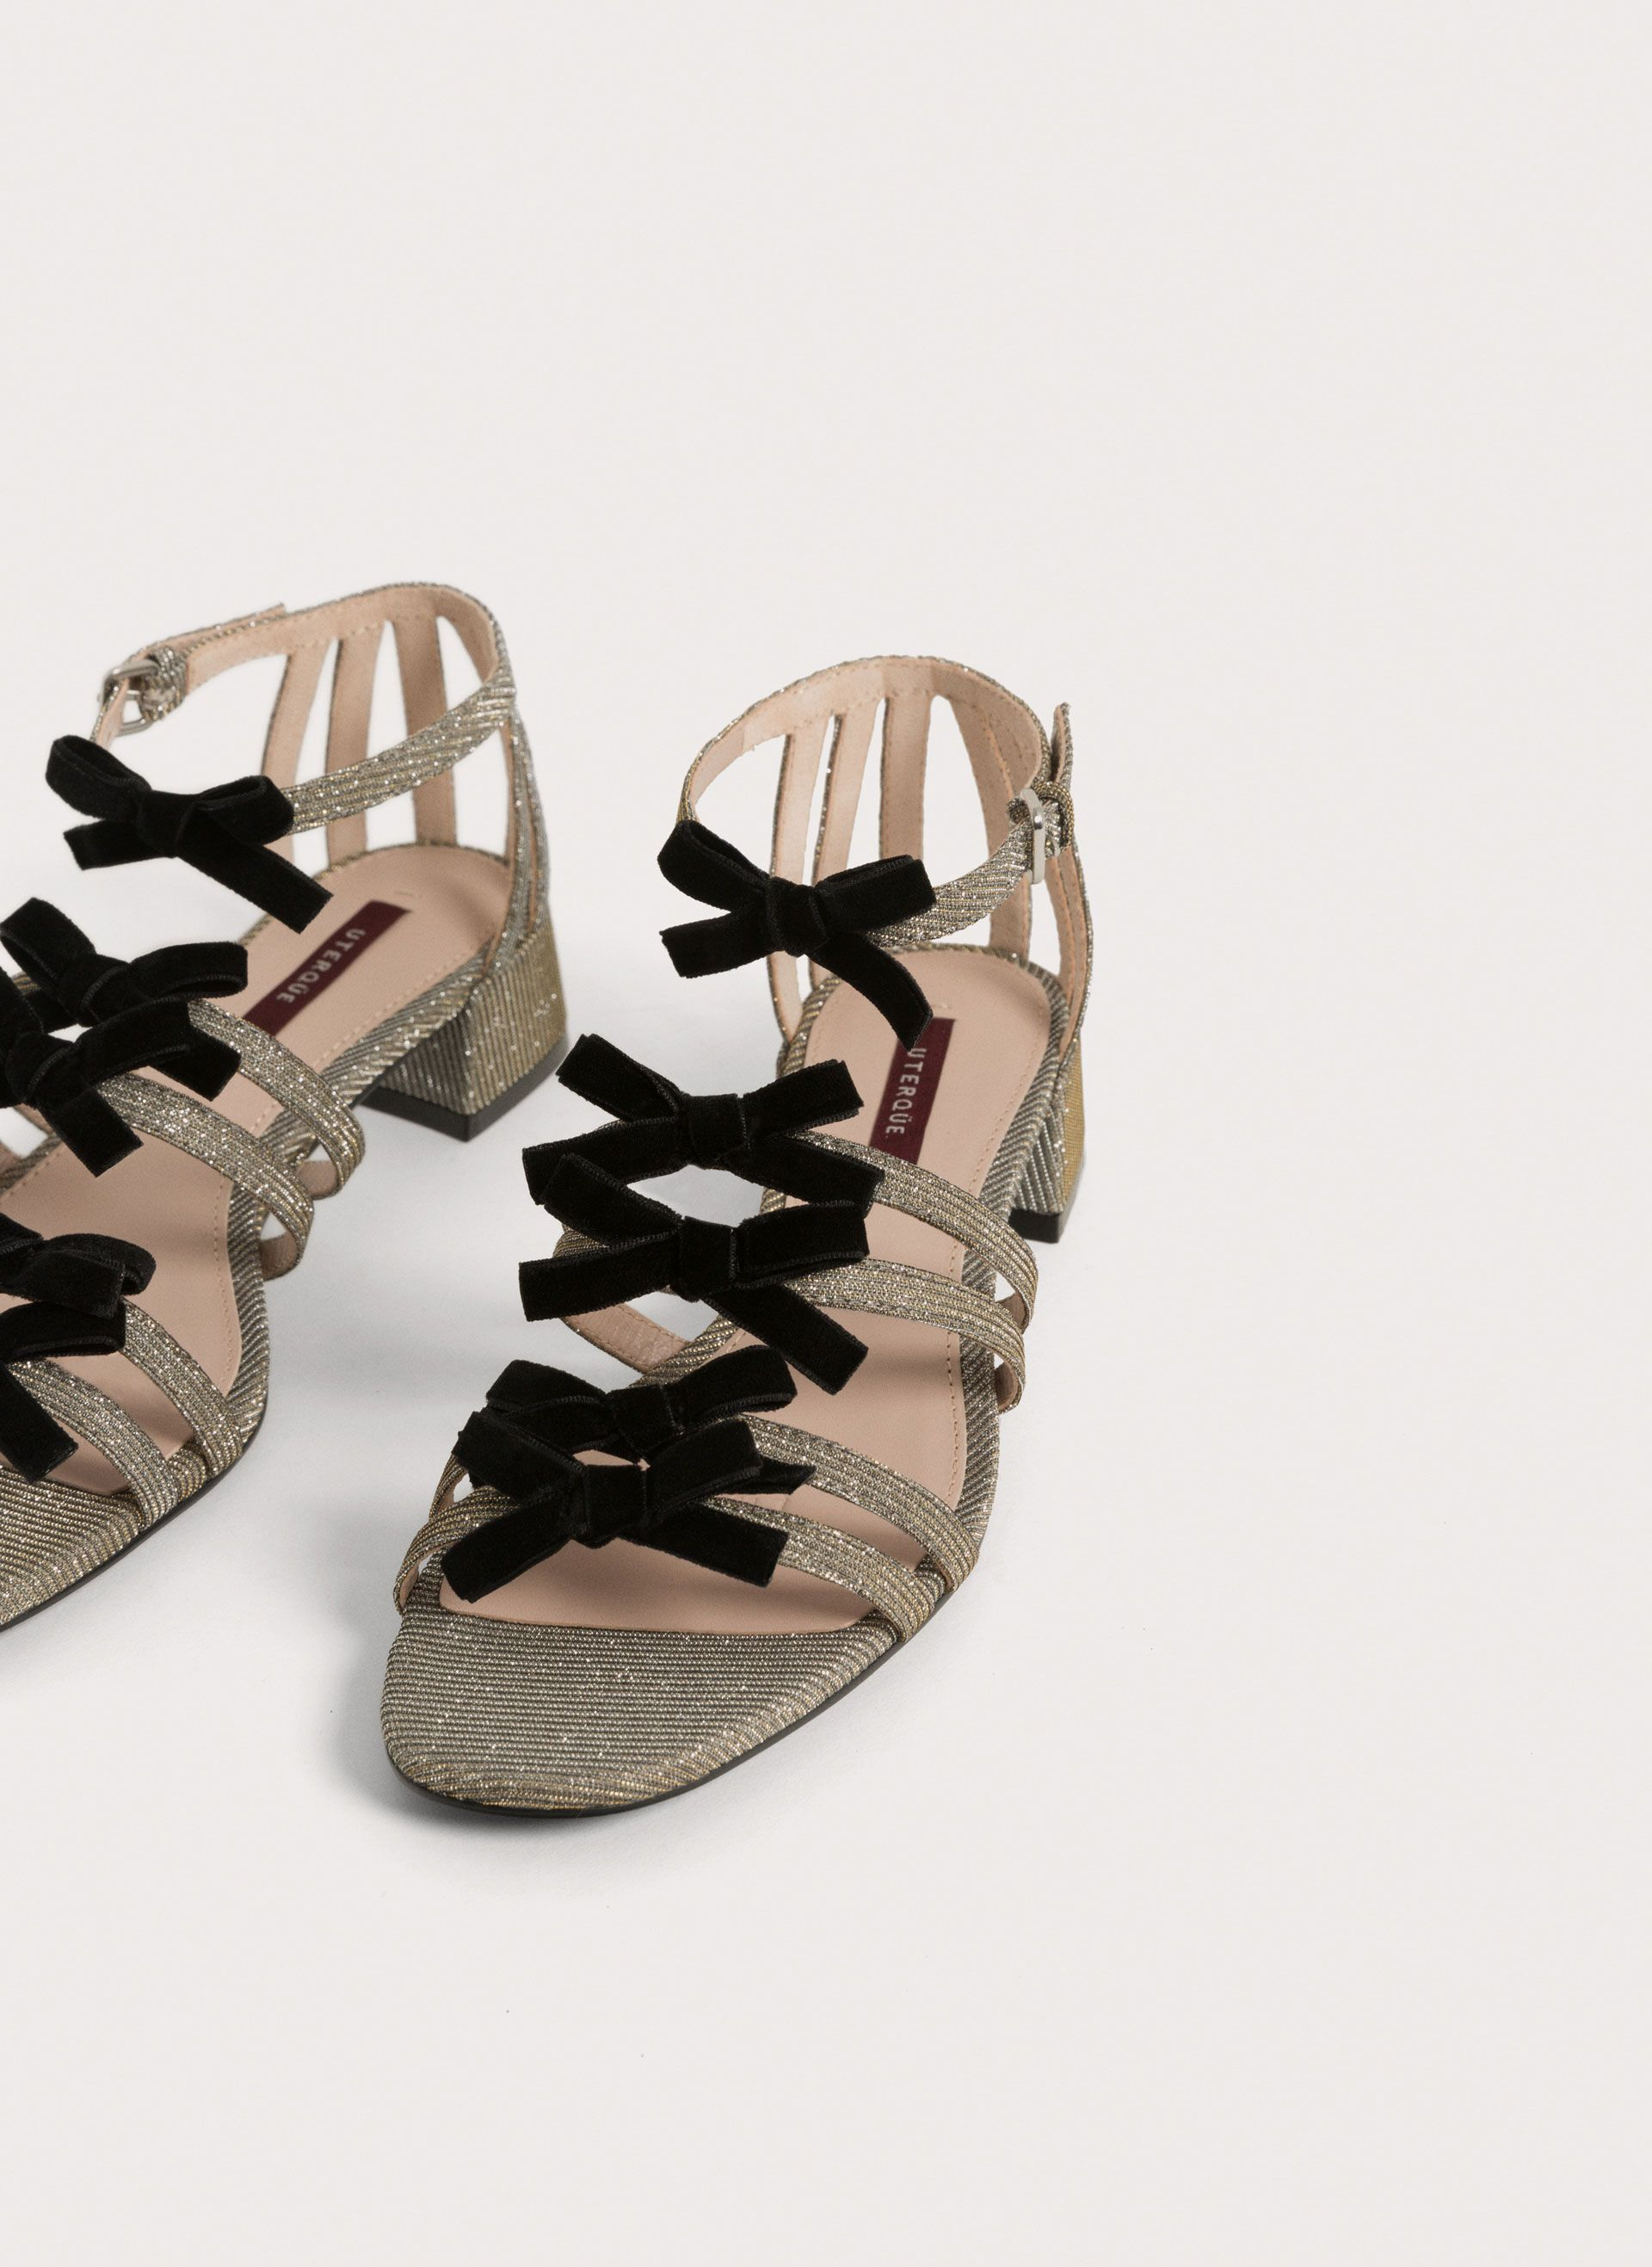 Uterqüe United Kingdom Product Page - New in - View all - Sandals with bow - 95